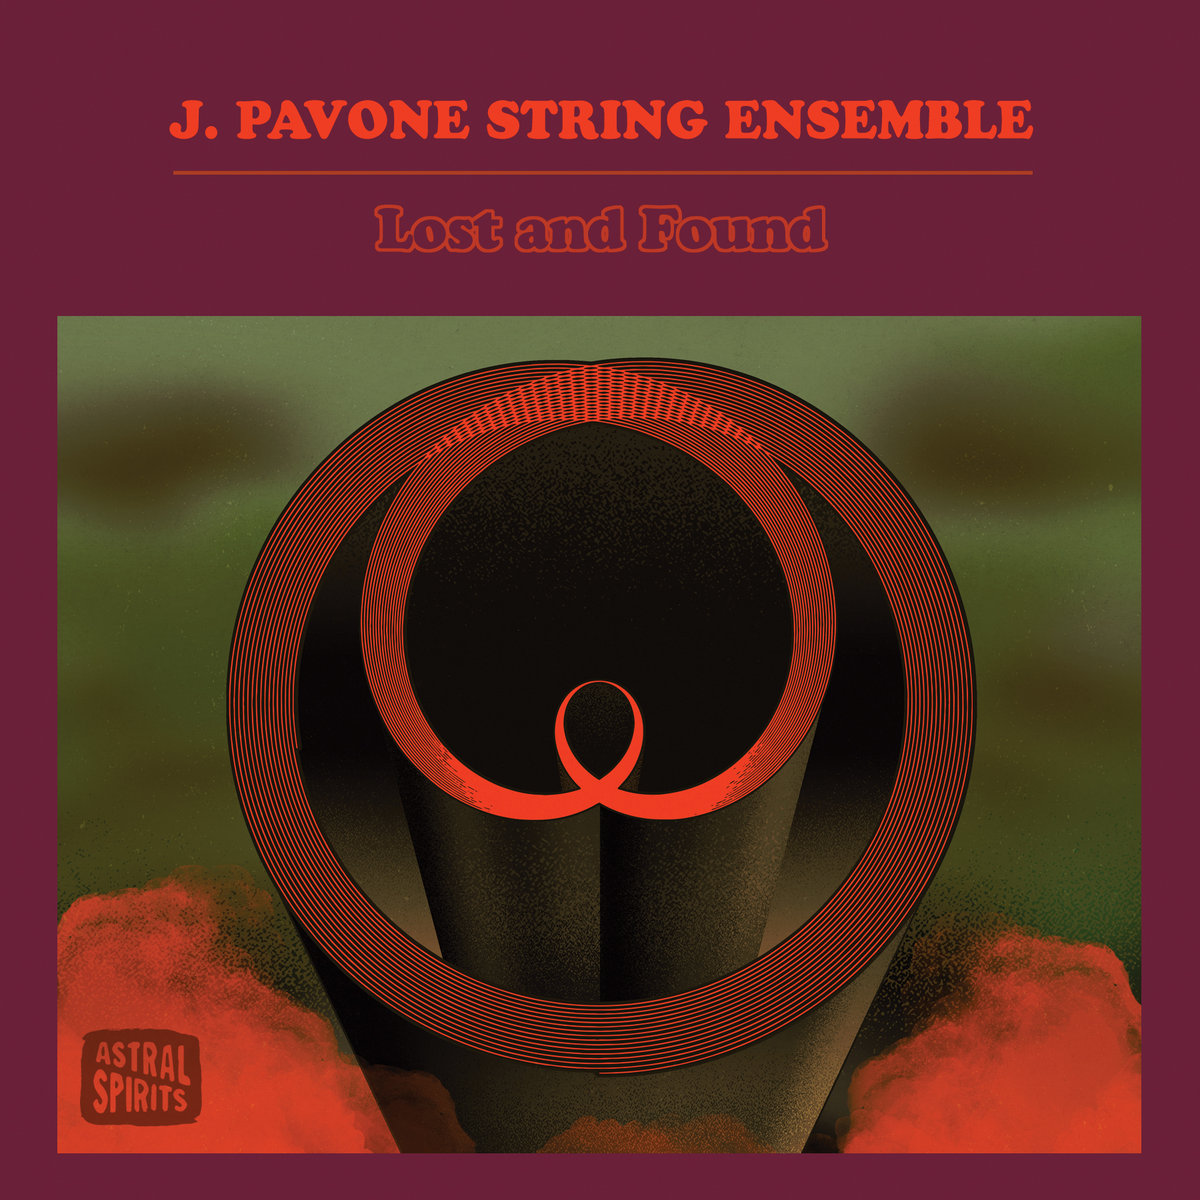 J. Pavone String Ensemble | Lost and Found | Astral Spirits